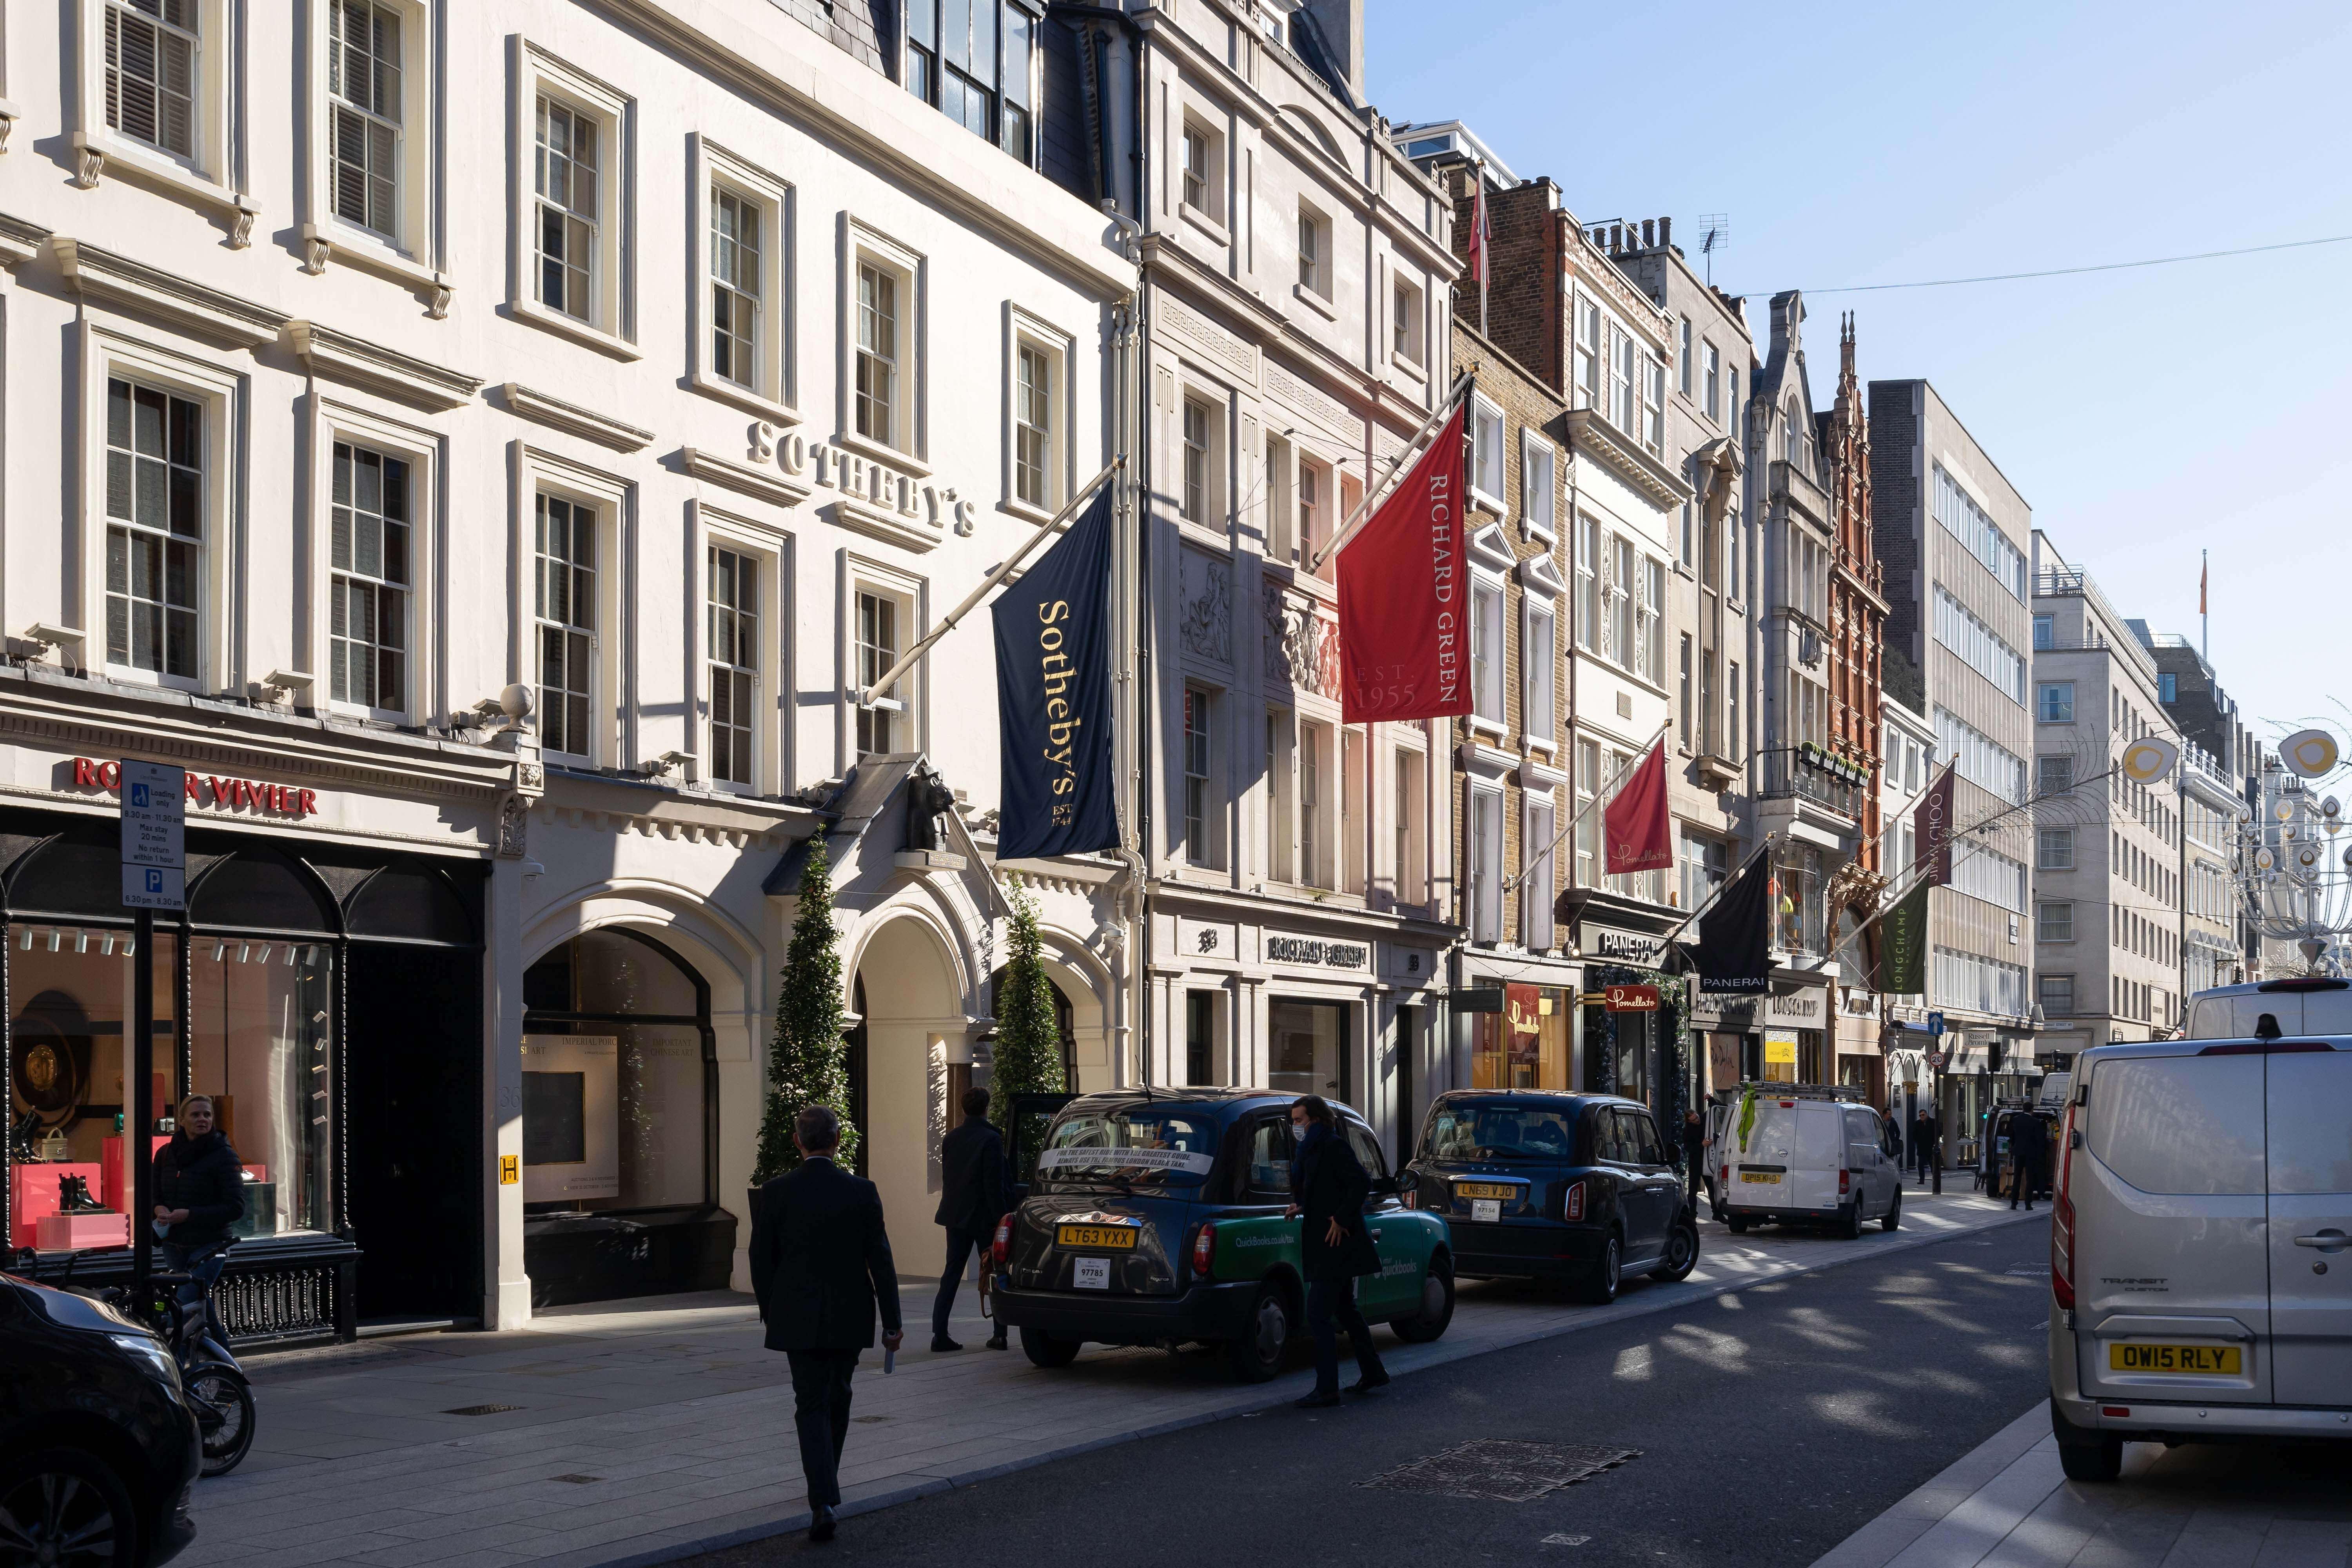 New Bond Street, Mayfair, London